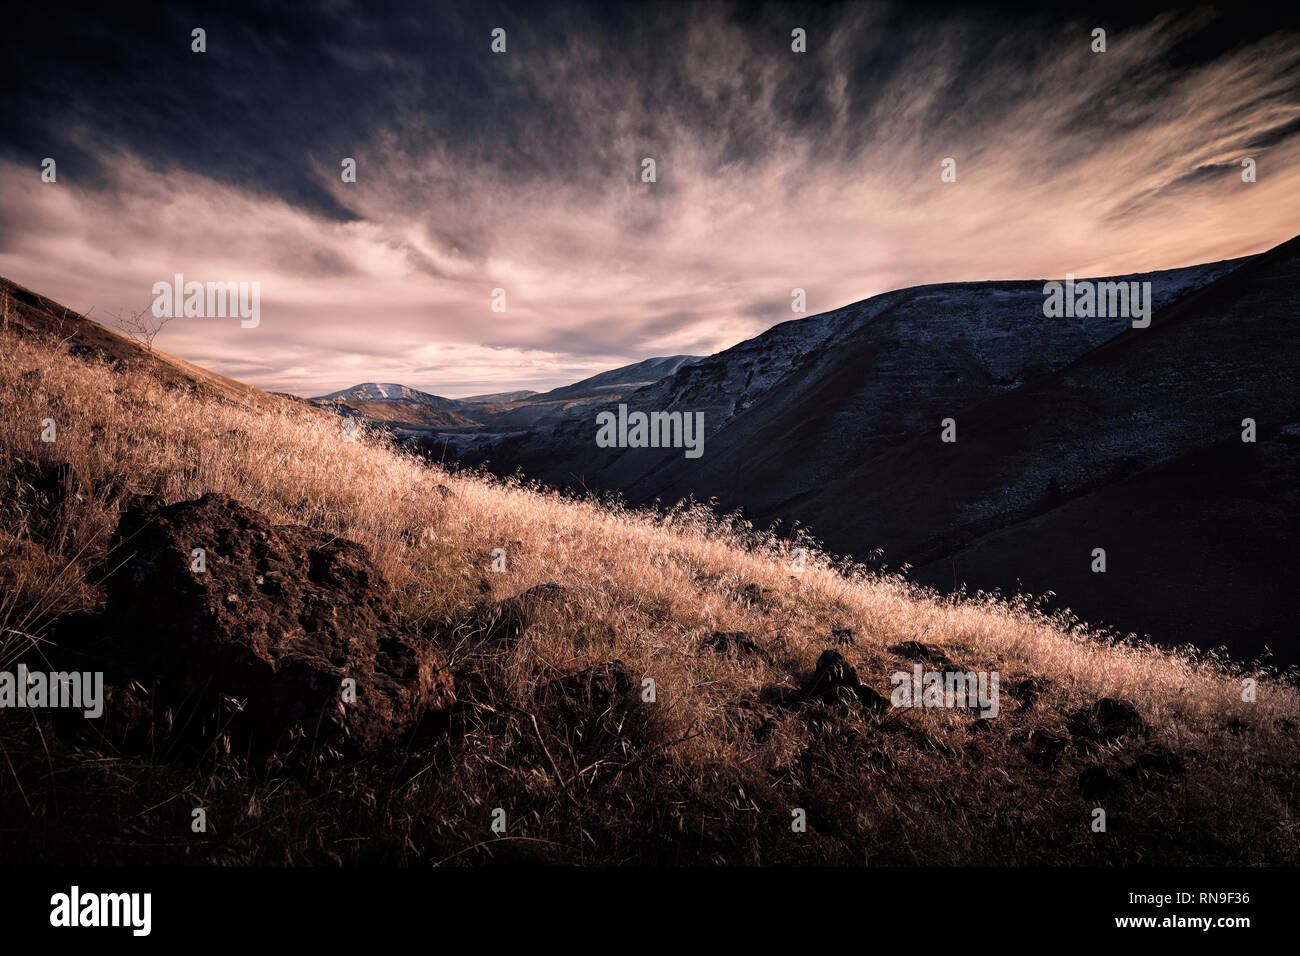 High Contrast Landscape of Hills and Valleys - Stock Image